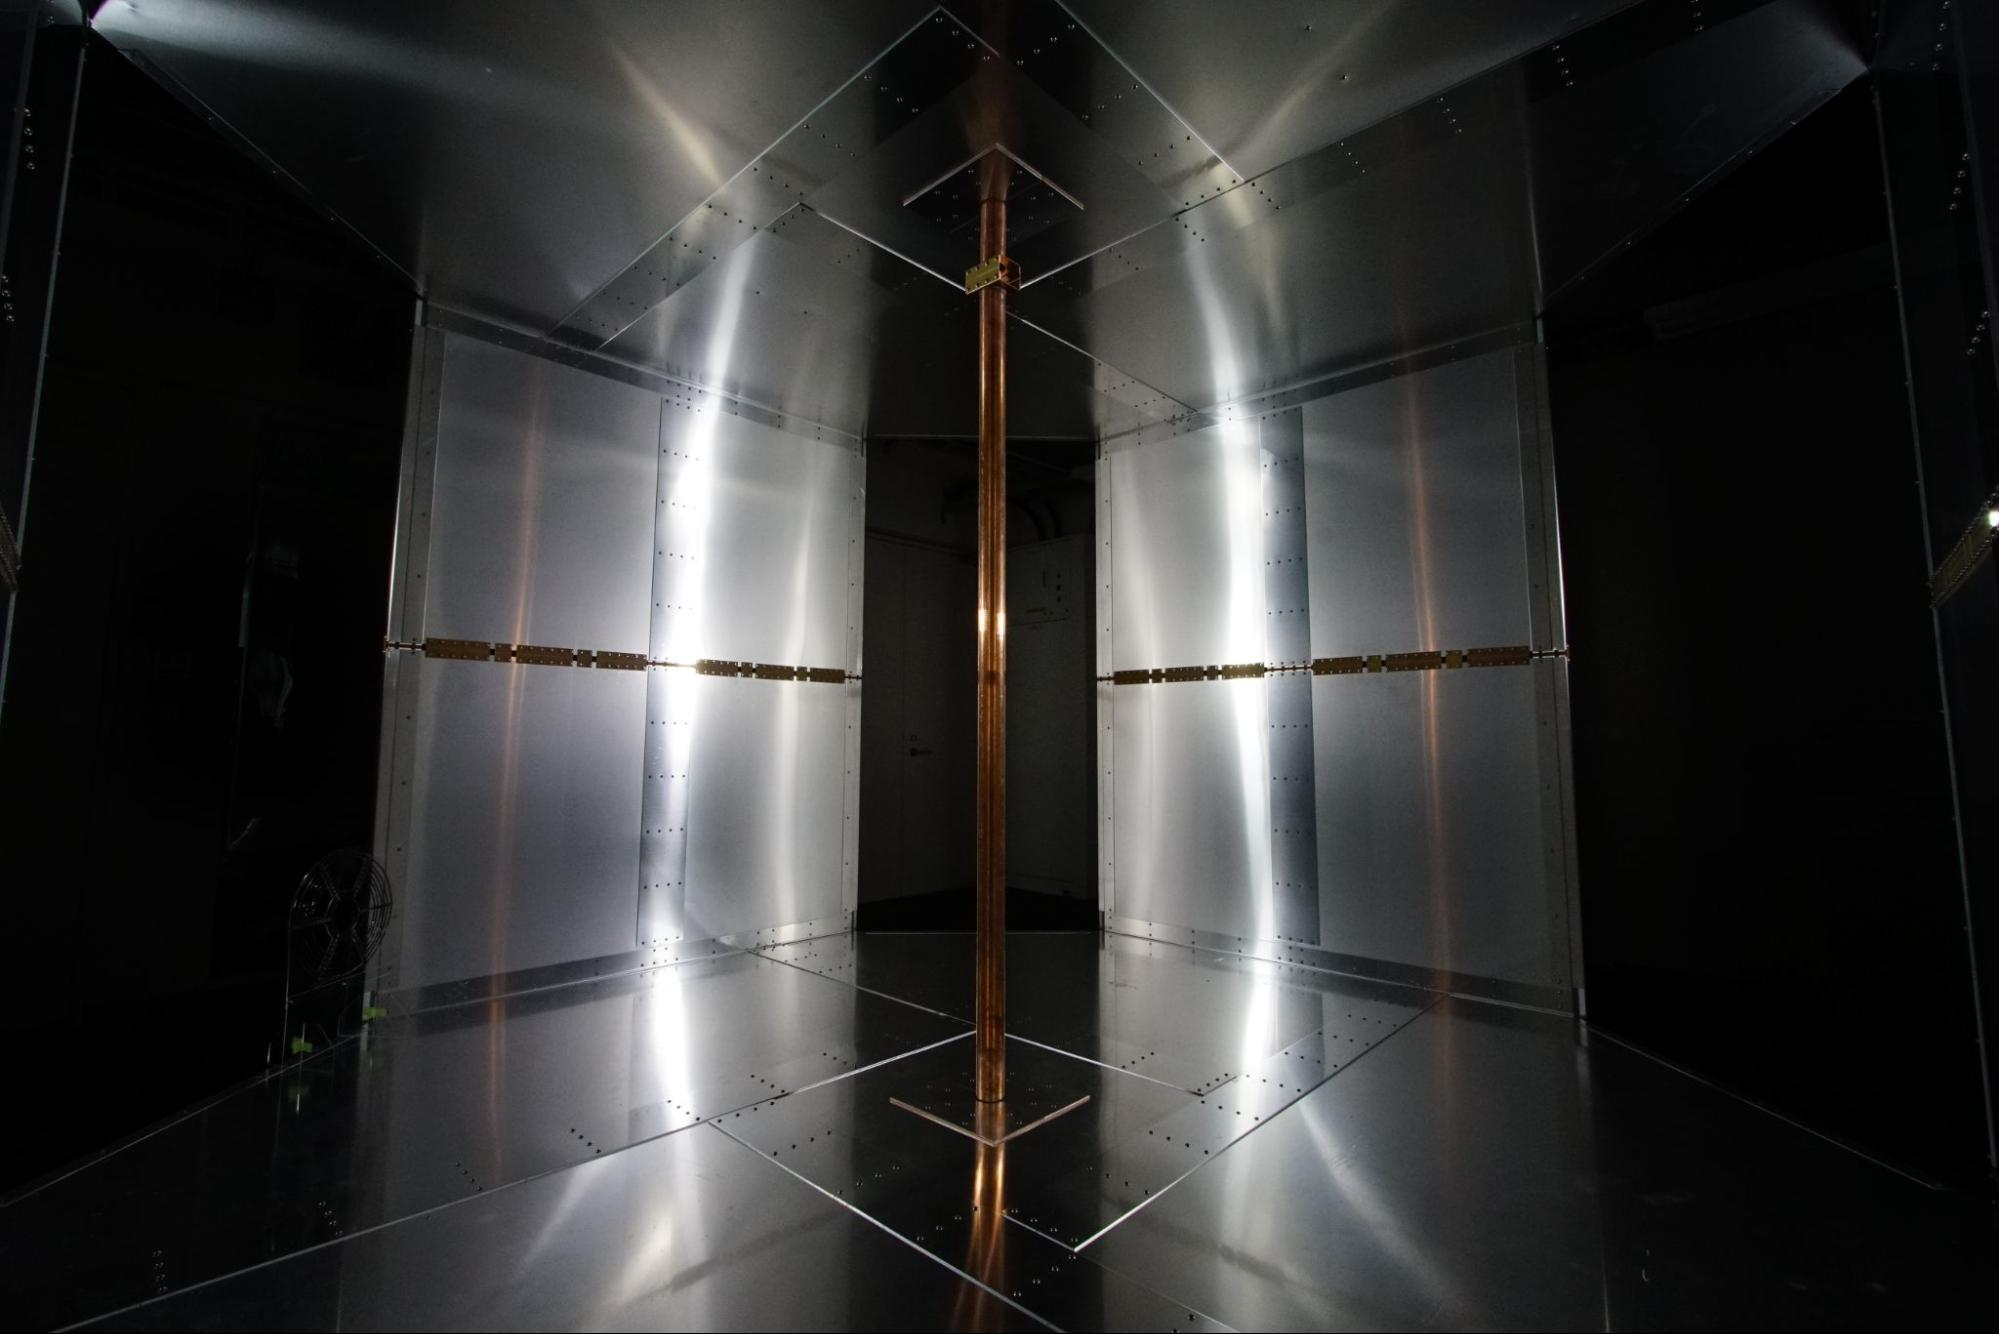 The room is dark with lights reflecting off metallic-looking walls embedded with the charging systems